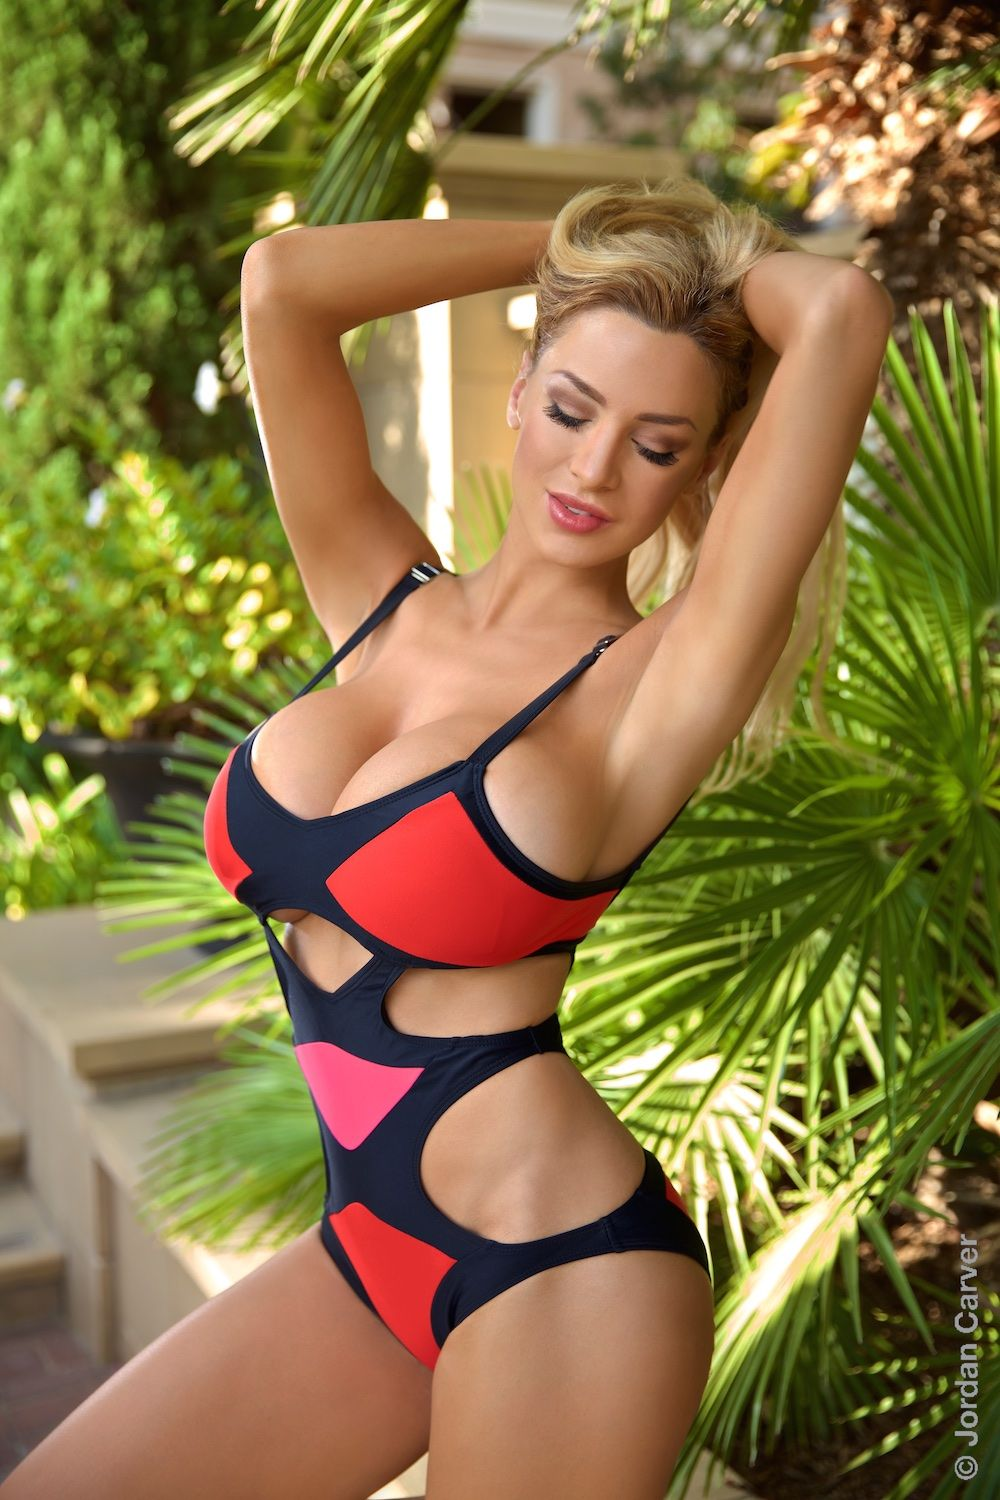 Jordan Carver Preview Of Her Set Tropical Bunny Joca